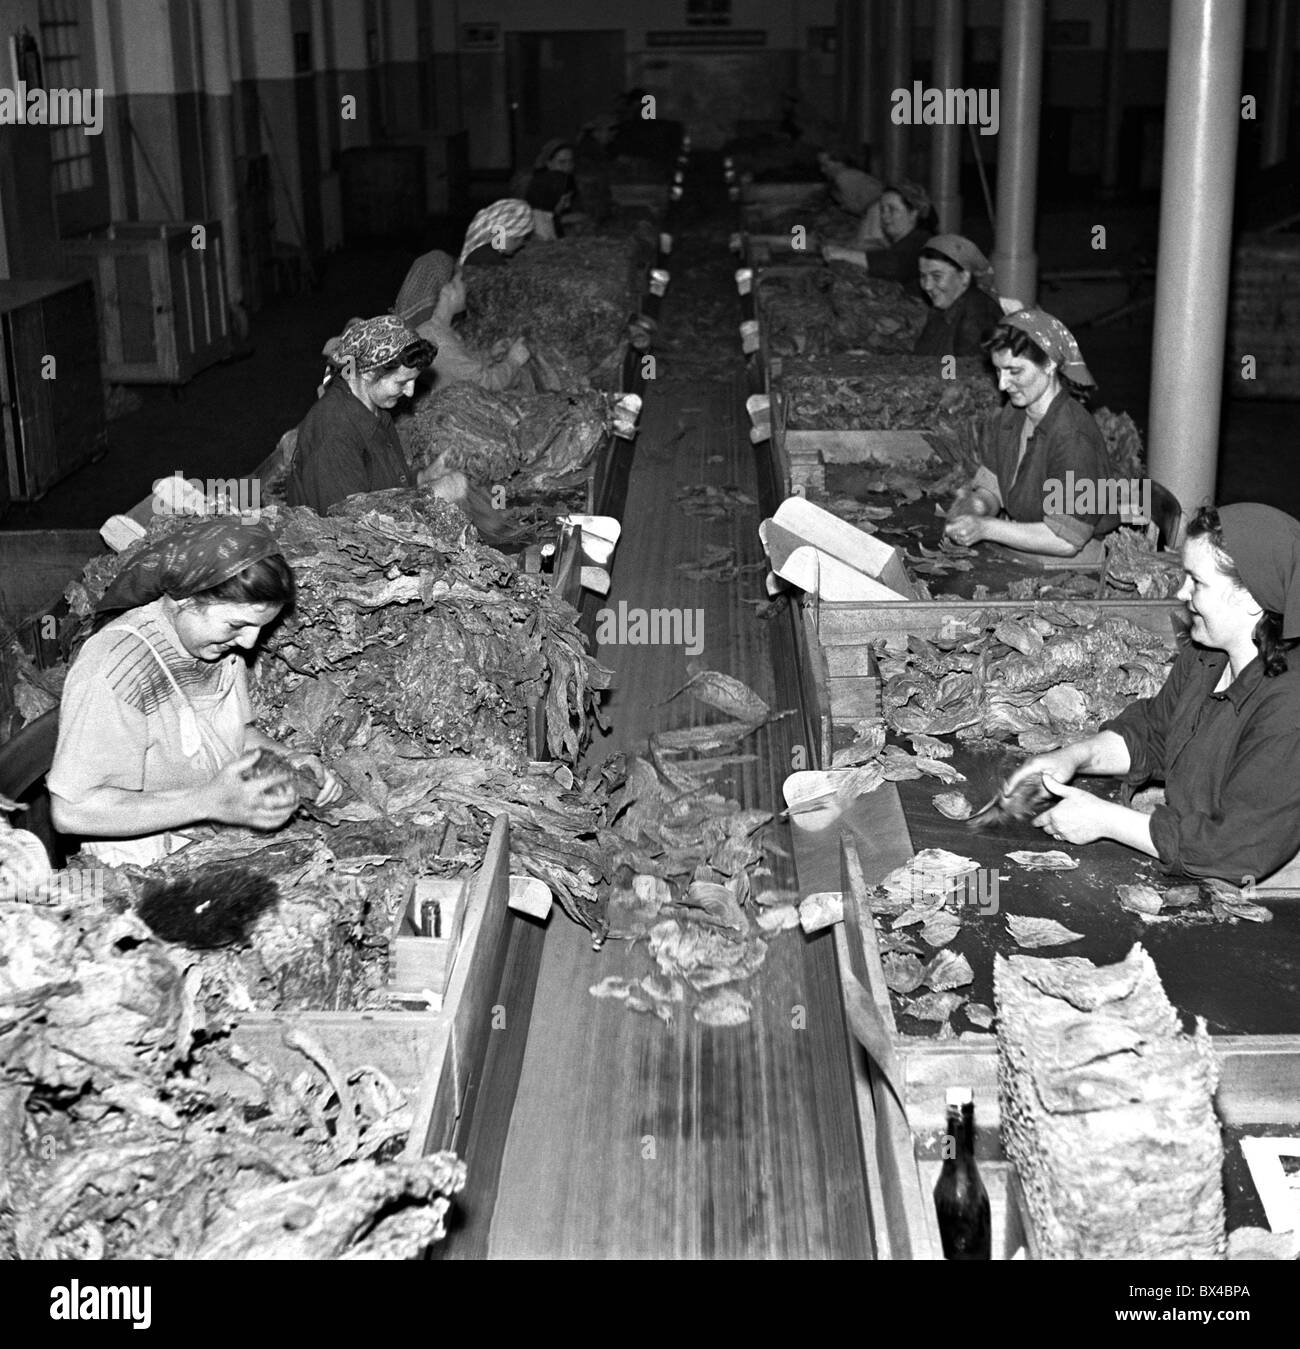 Czechoslovakia -  Budweiss 1950. Women sort through tobacco leaves at tobacco factory. CTK Vintage Photo - Stock Image